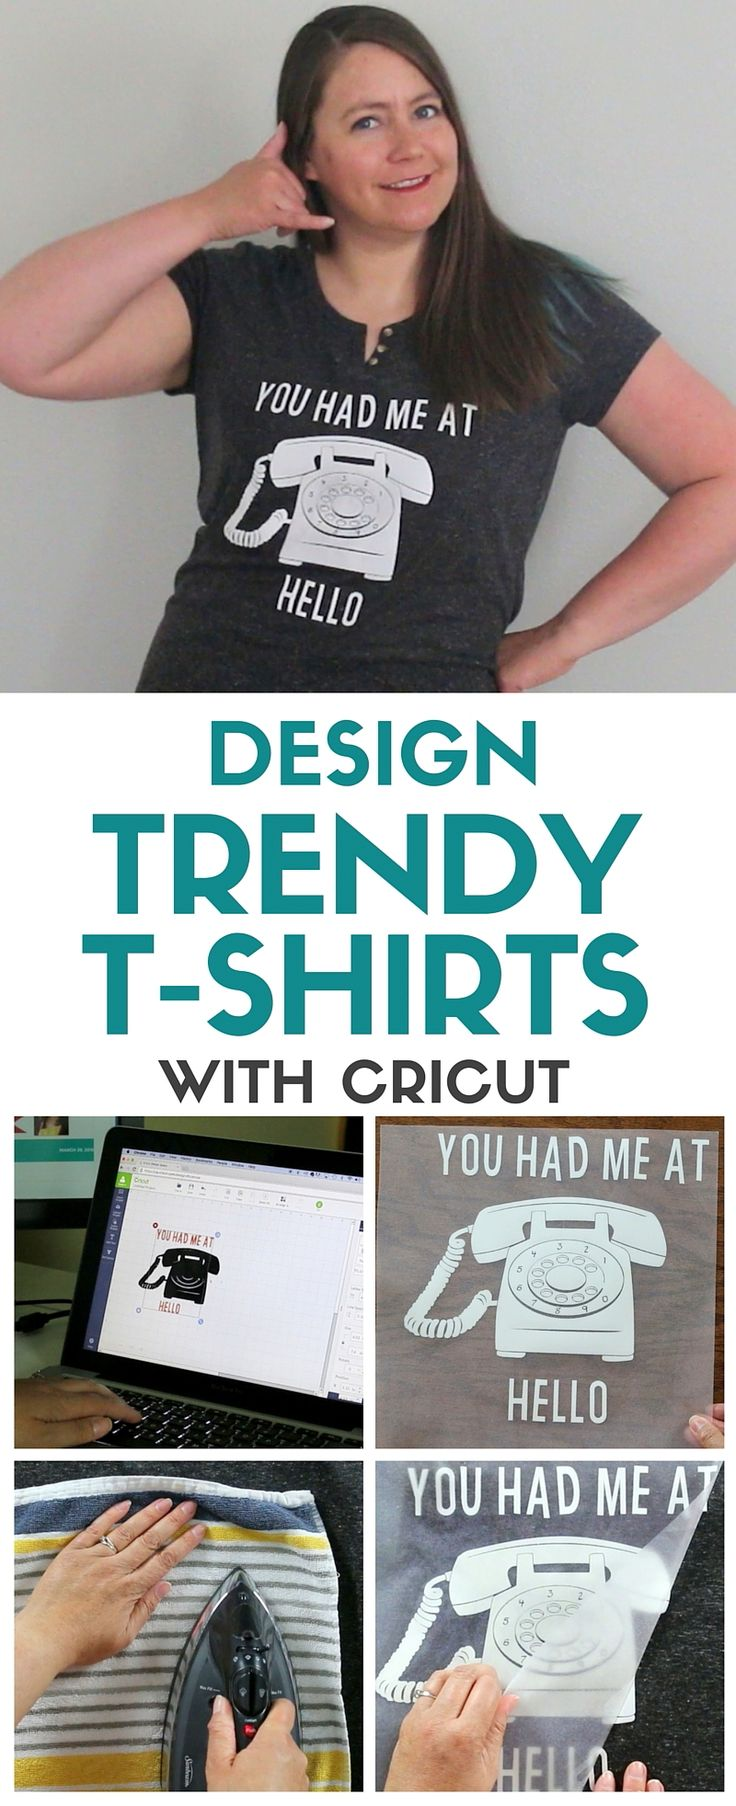 Design t shirt and get paid - How To Design Trendy T Shirts With Cricut